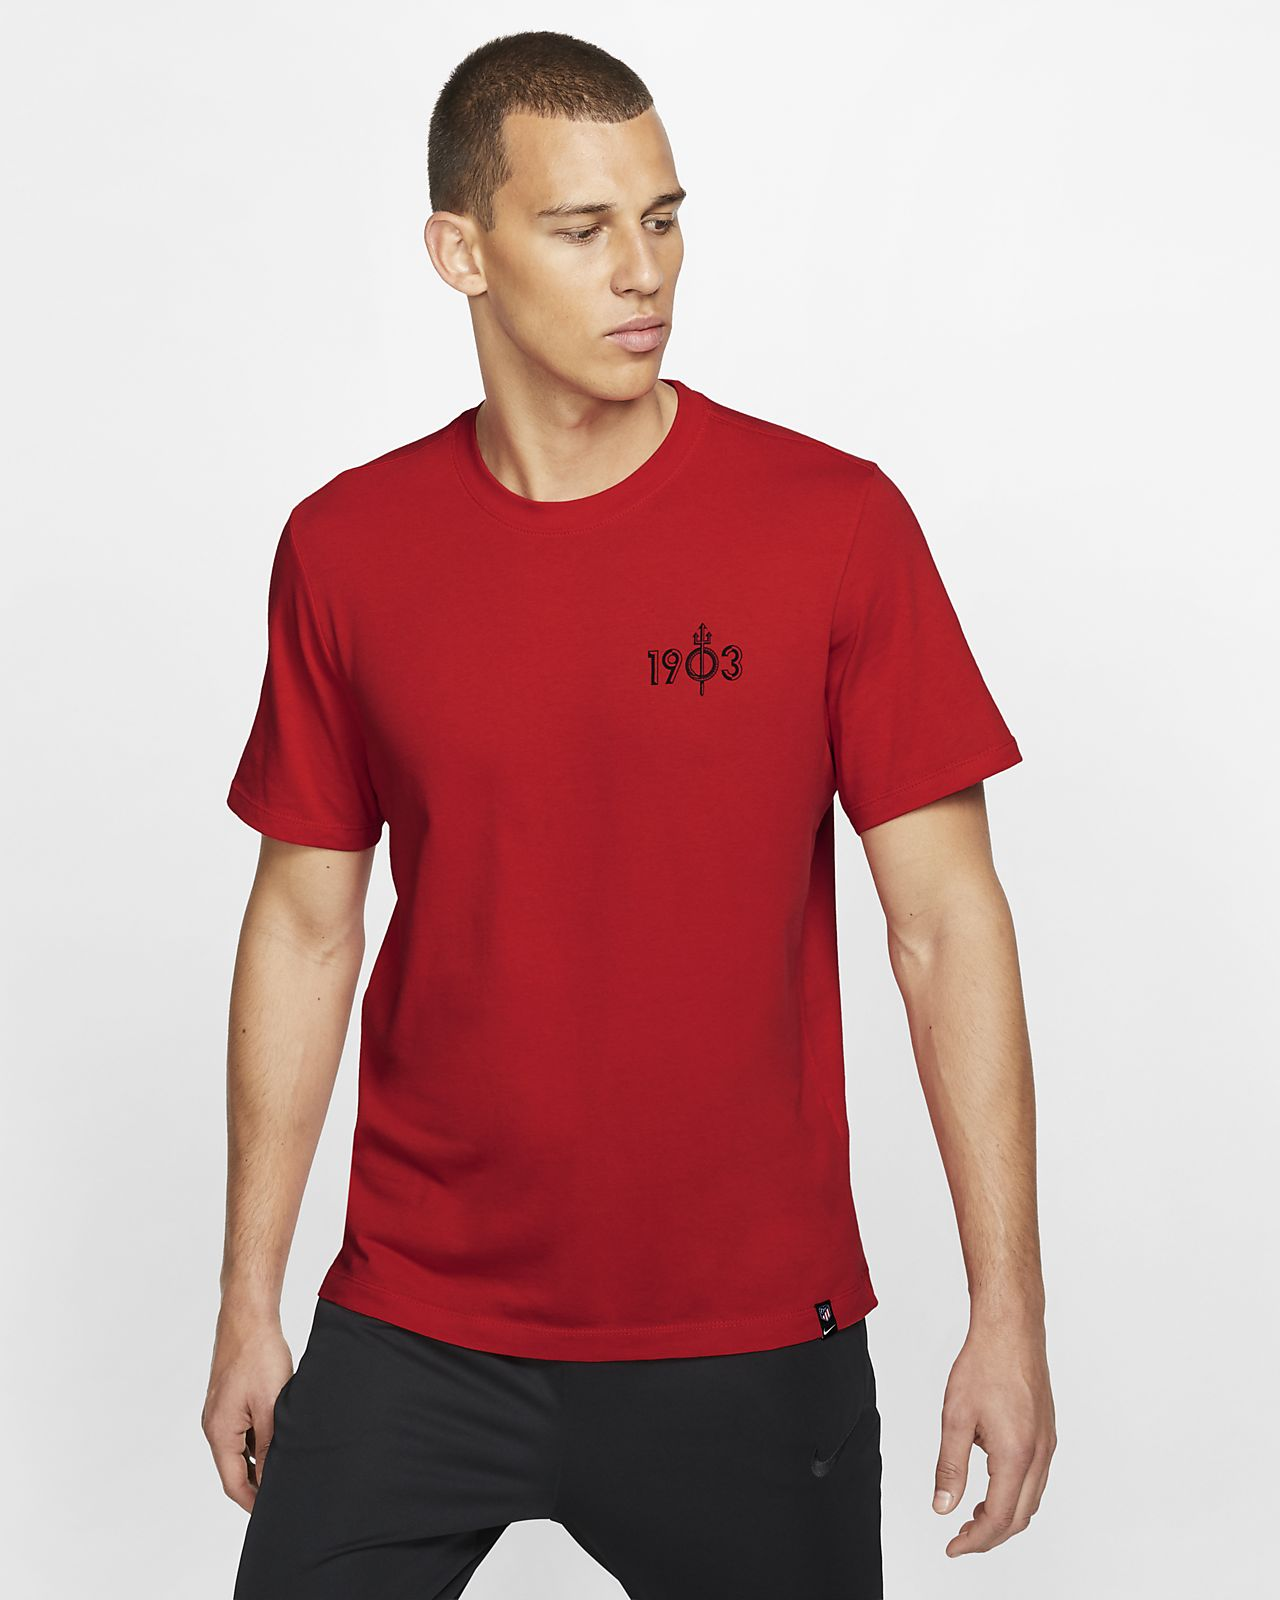 Atlético de Madrid Men's T-Shirt